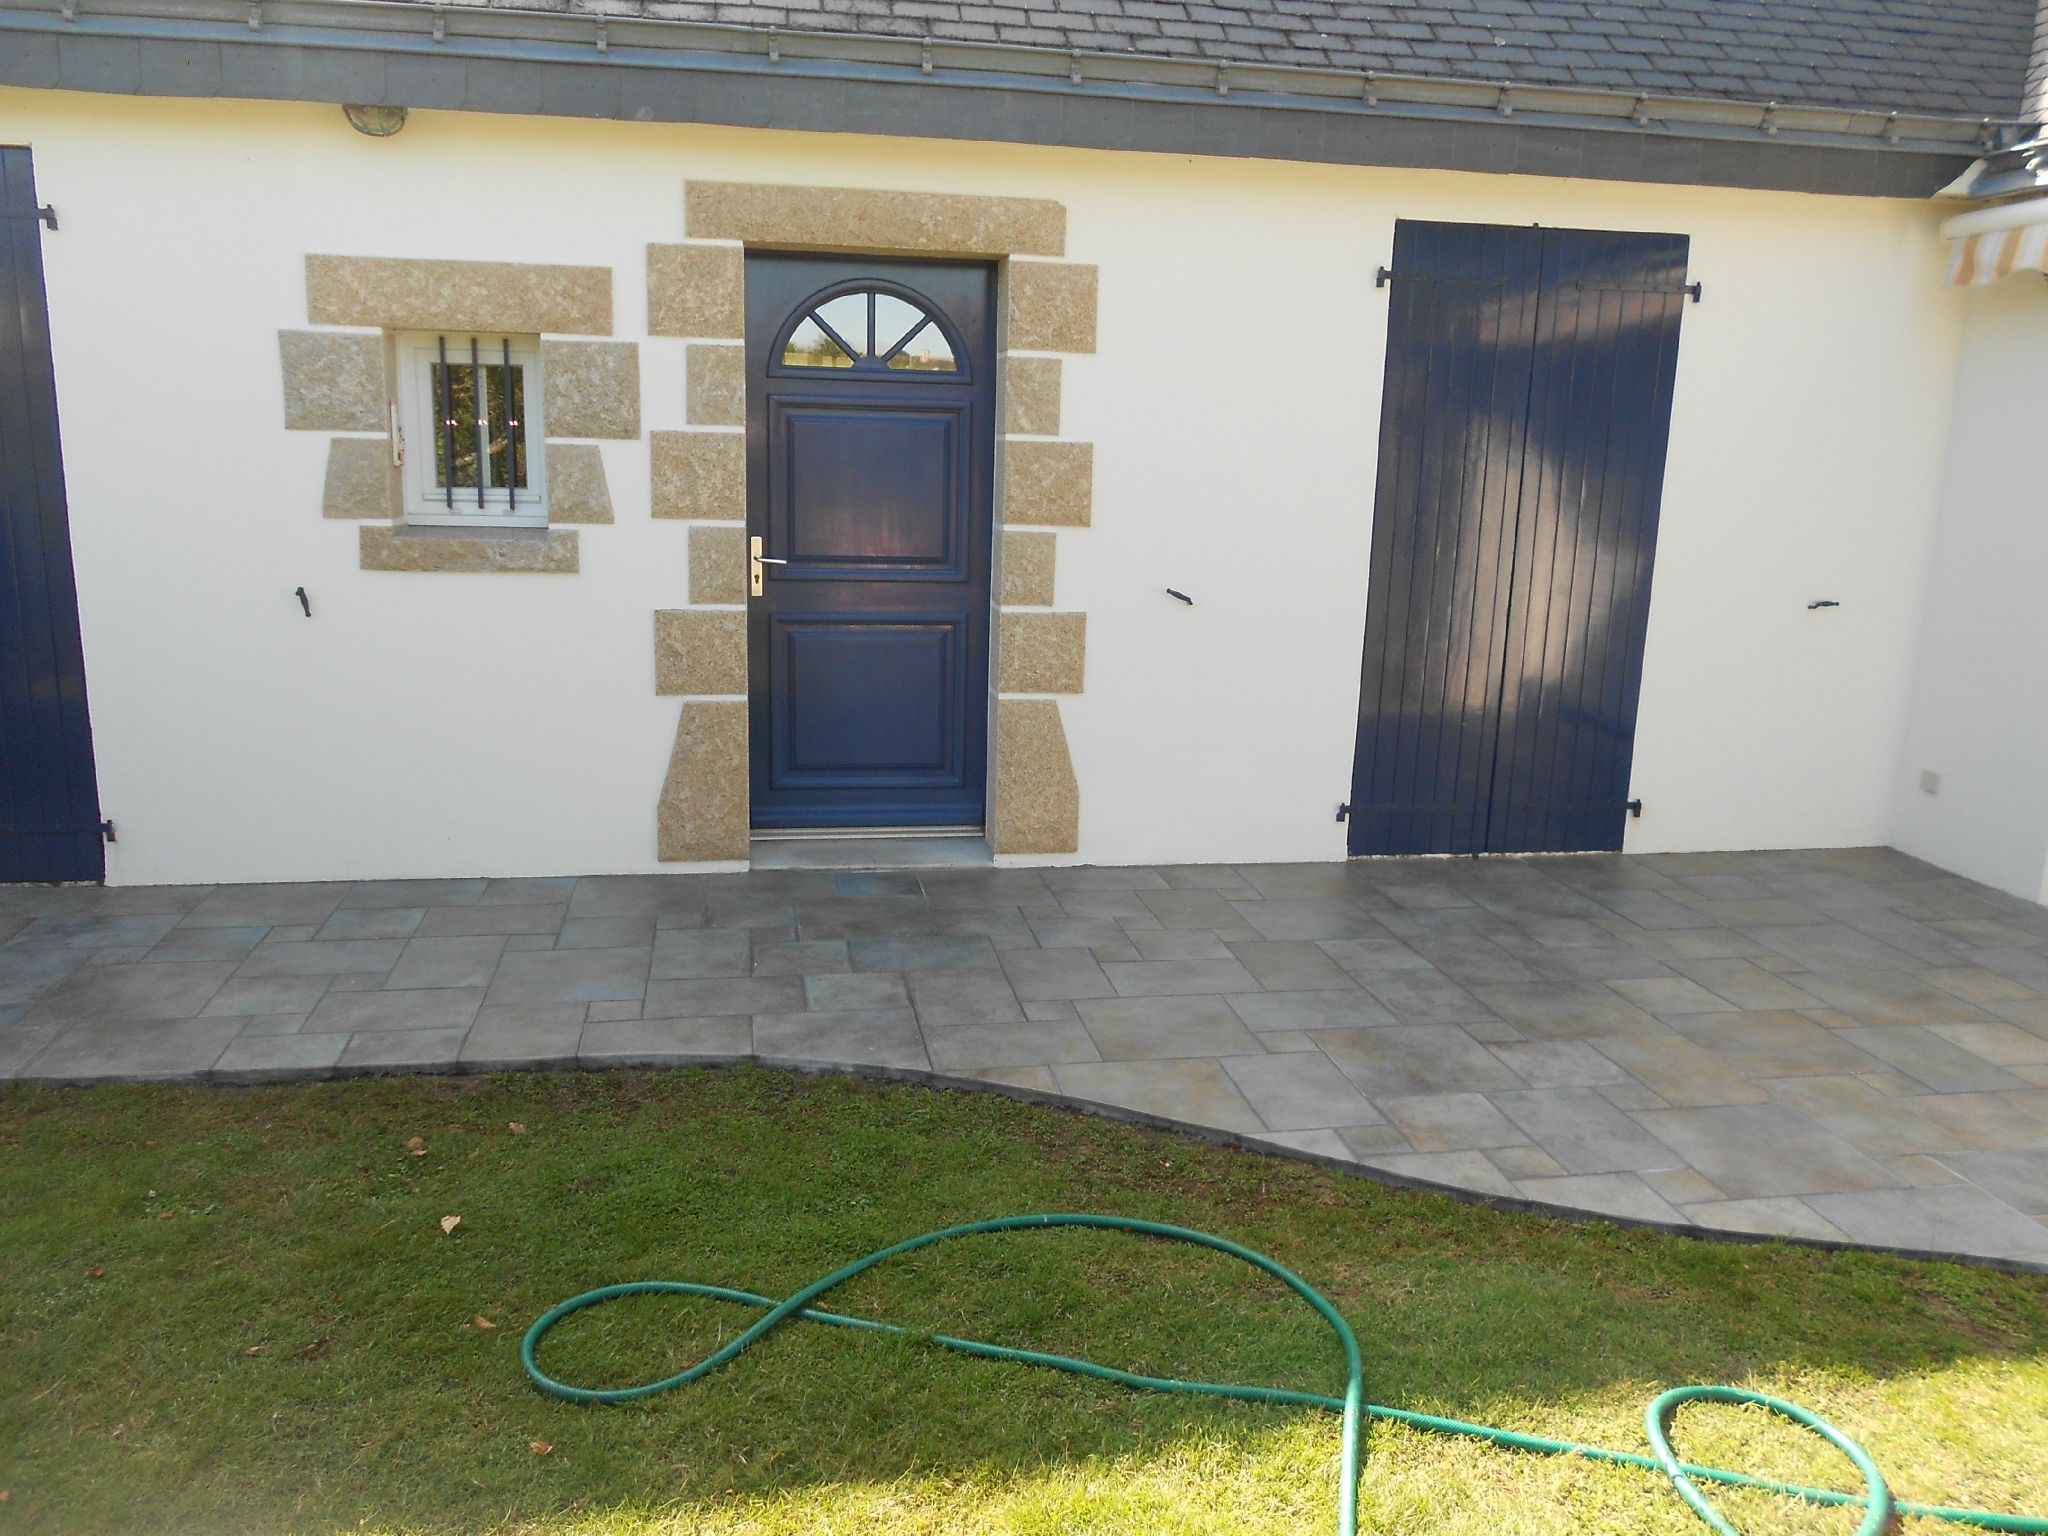 Remplacement ancien dallage par du carrelage en 4 formats for Etancheite terrasse avant pose carrelage